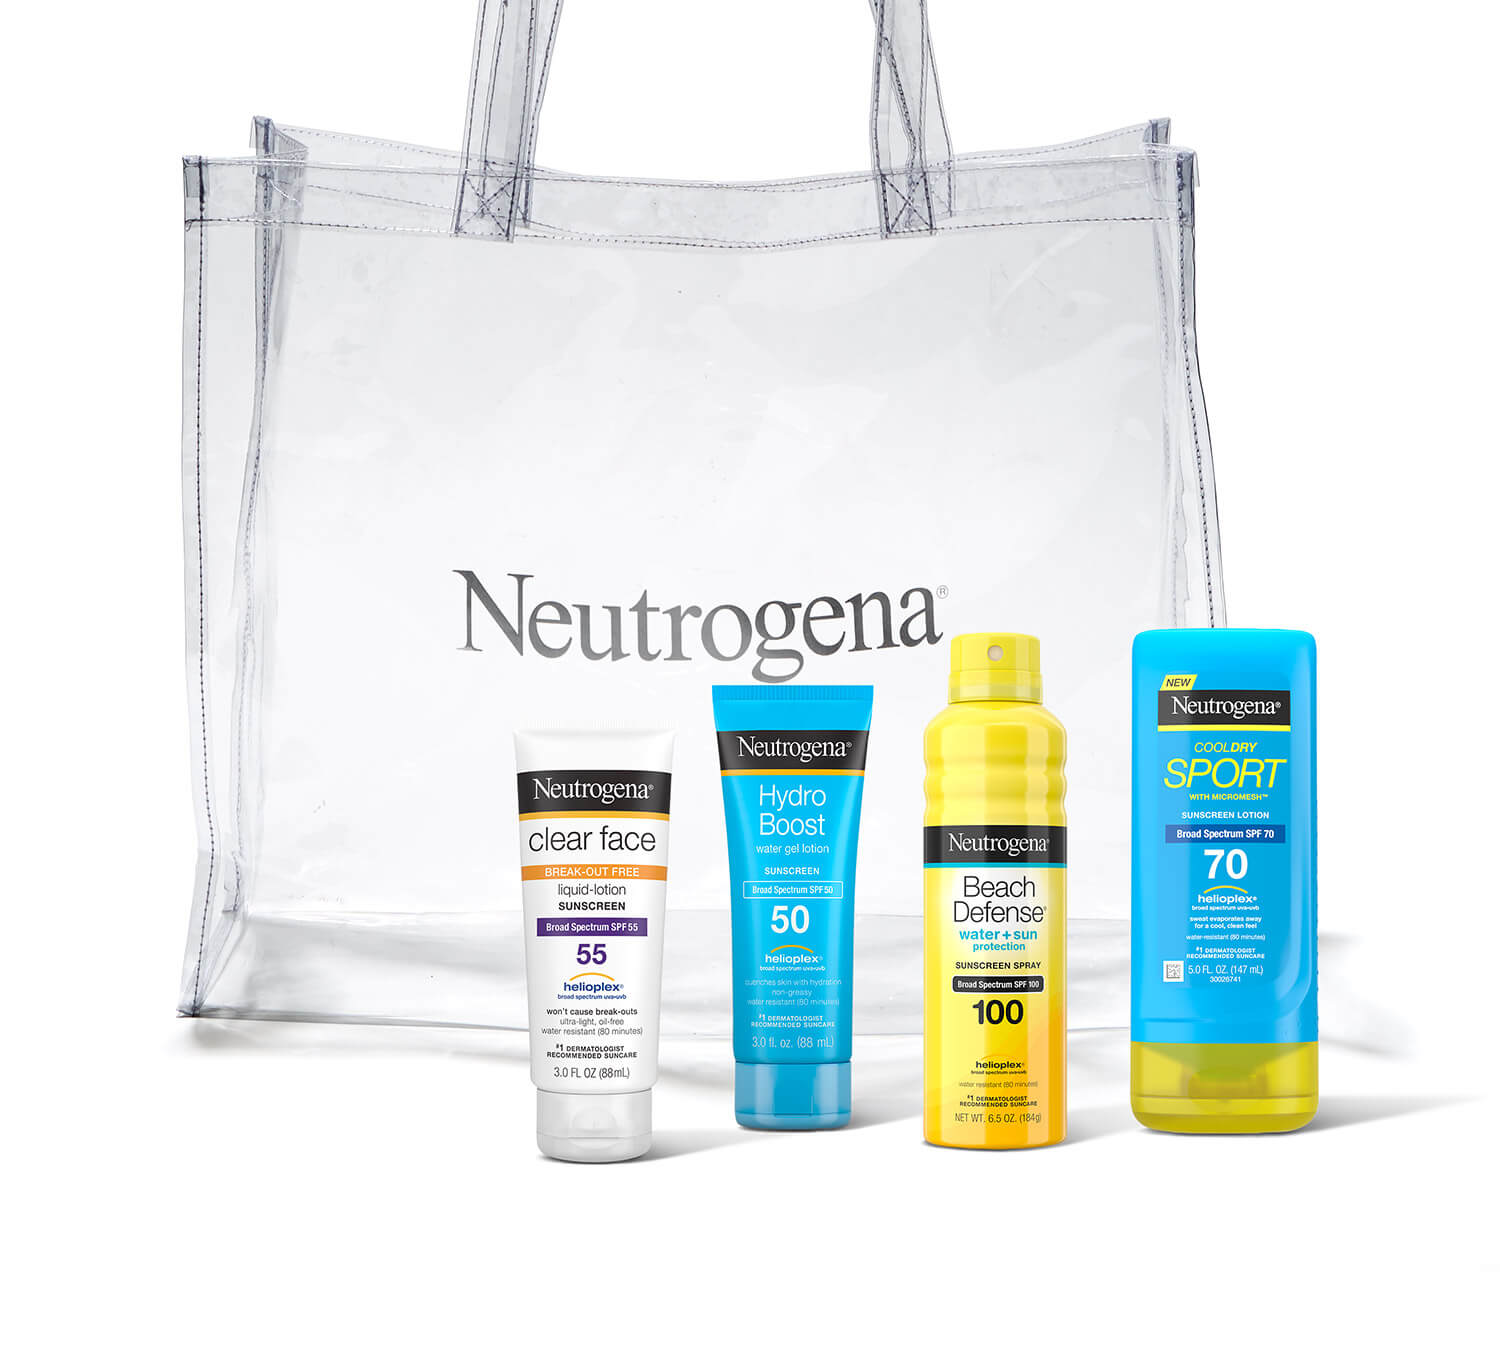 neutrogena com coupon